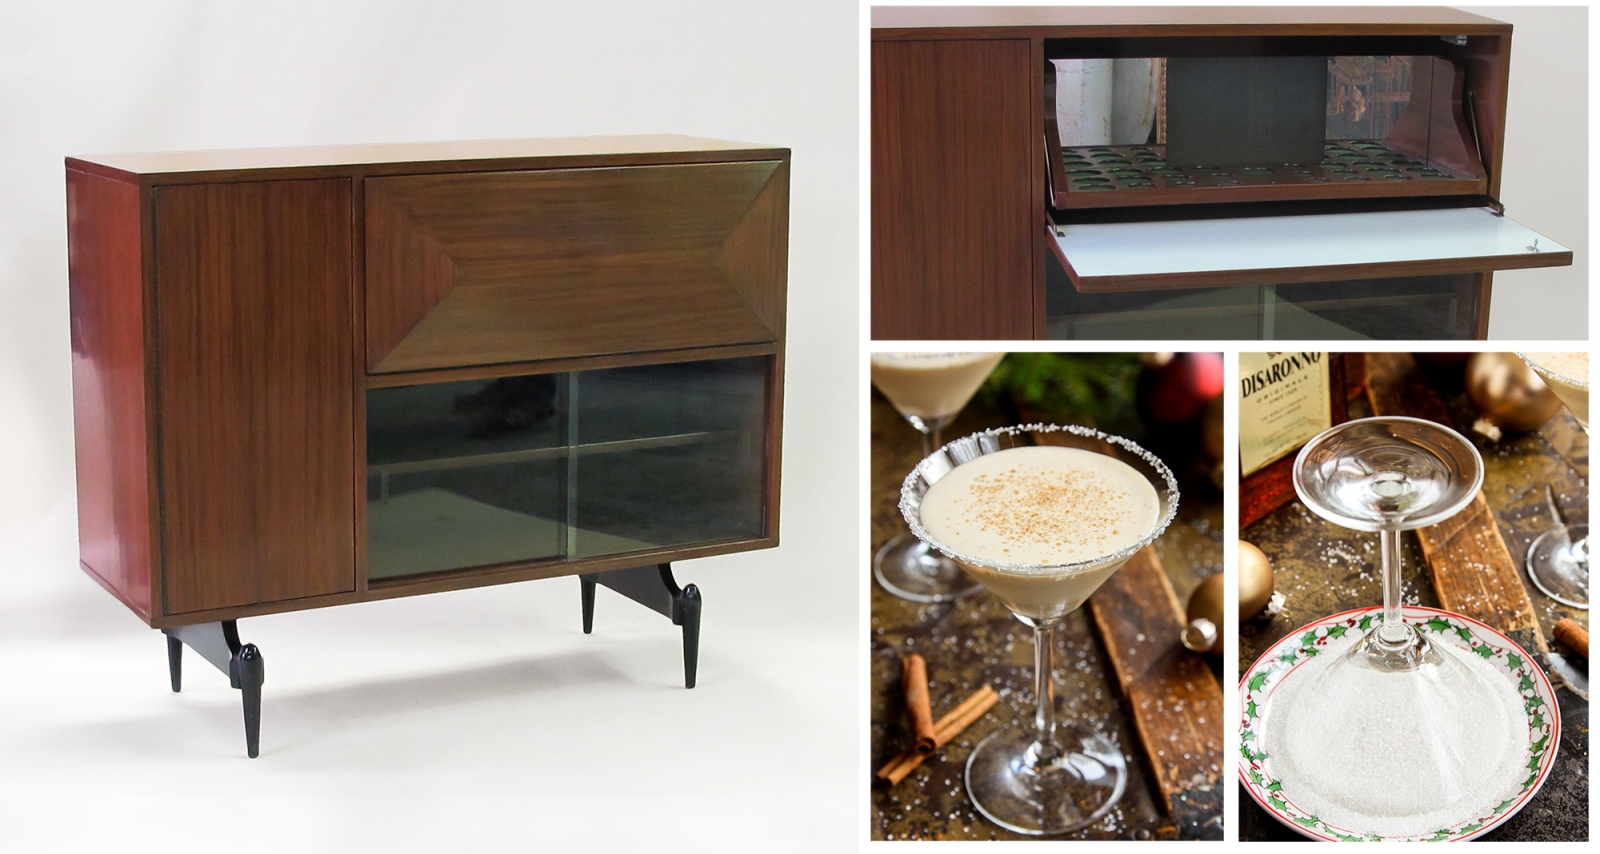 epoca American 1950's Drop-Front Bar for Stylish Holidays Entertaining